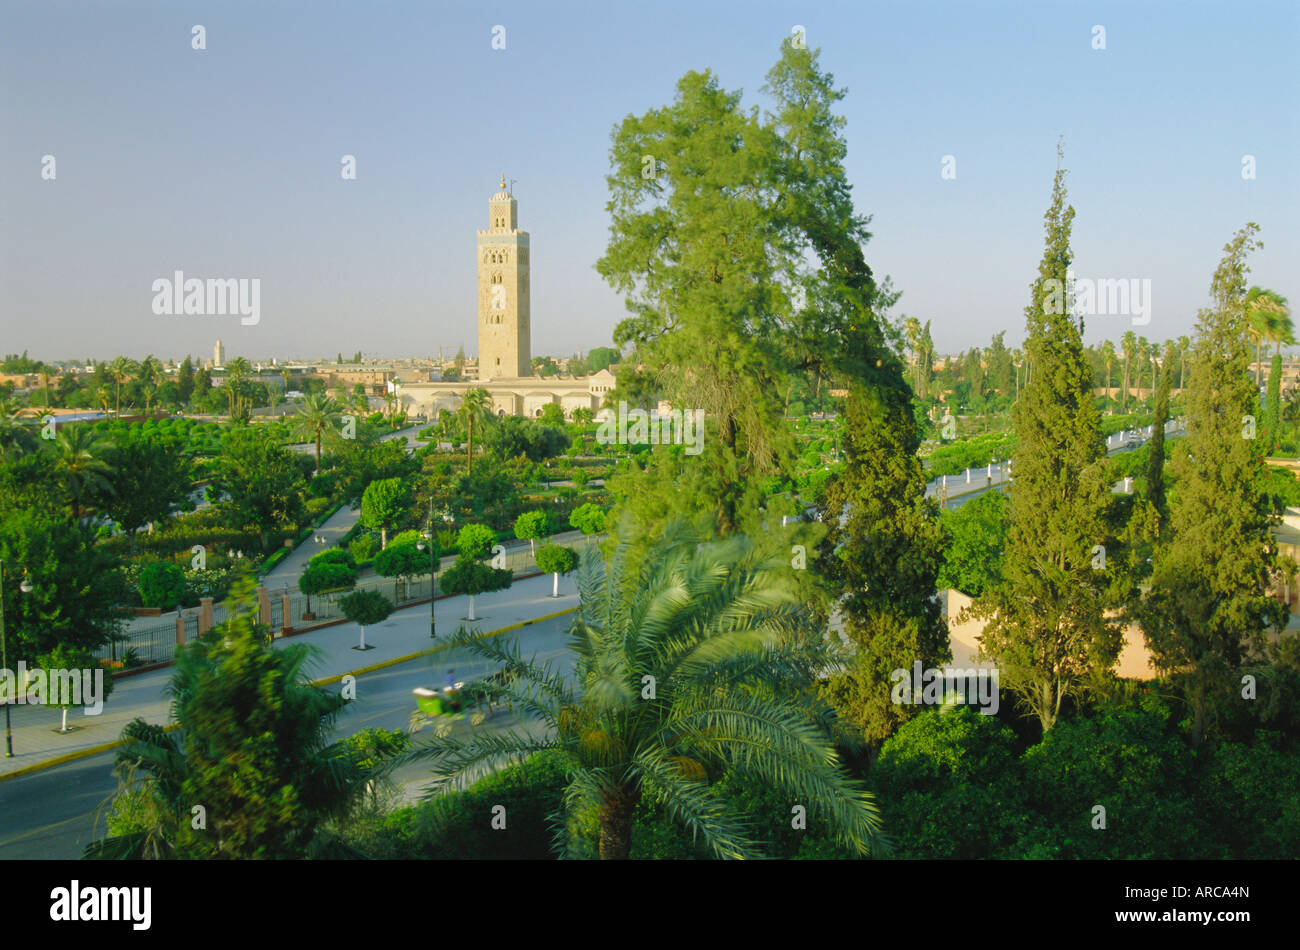 The Koutoubia minaret on the skyline of Marrakech (Marrakesh), Morocco, North Africa, Africa - Stock Image